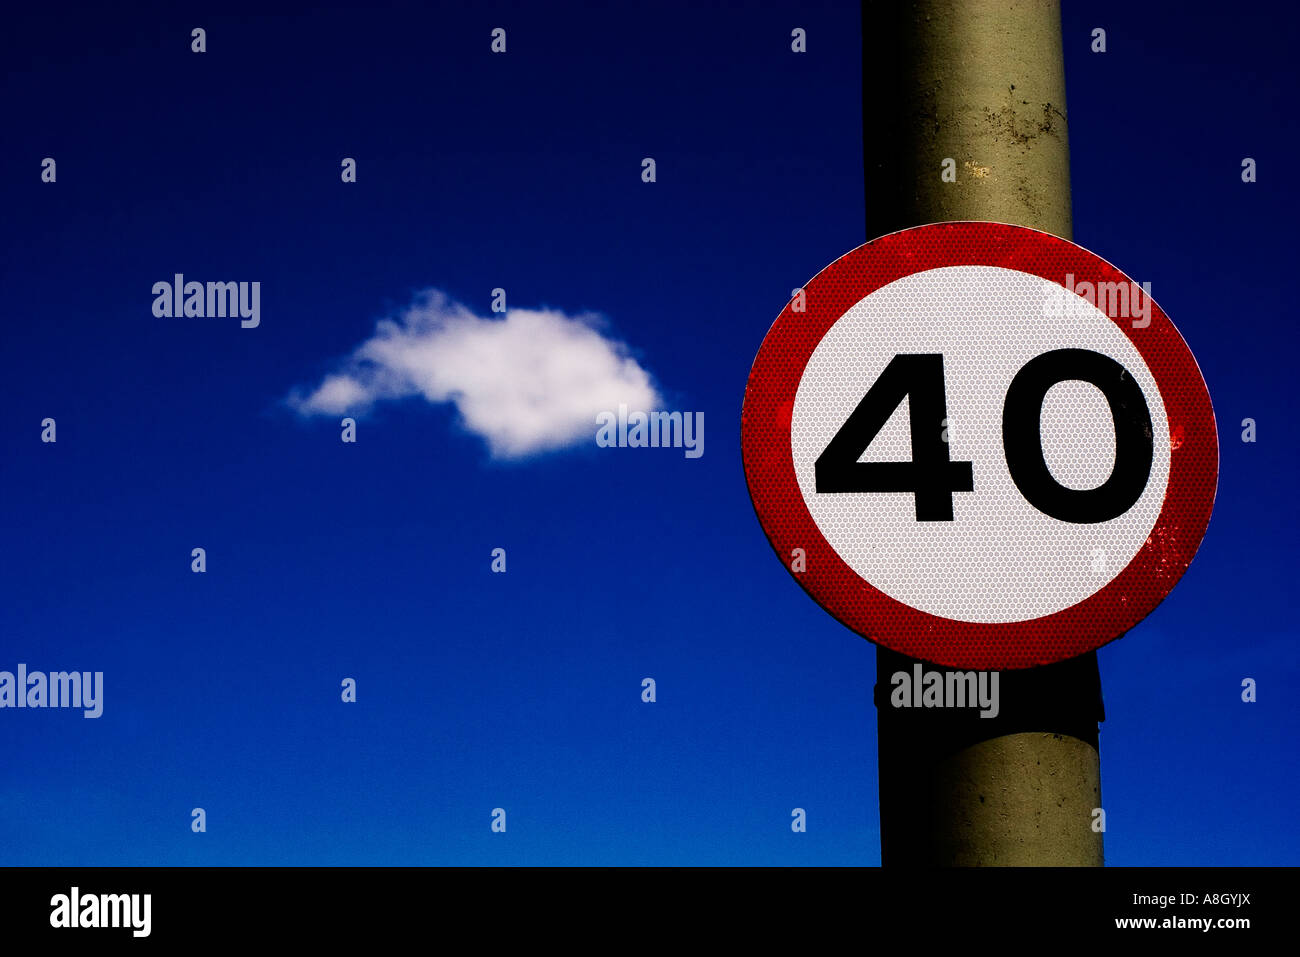 road sign 40 miles per hour speed limit against dark blue sky with a single fluffy white cloud in the background - Stock Image